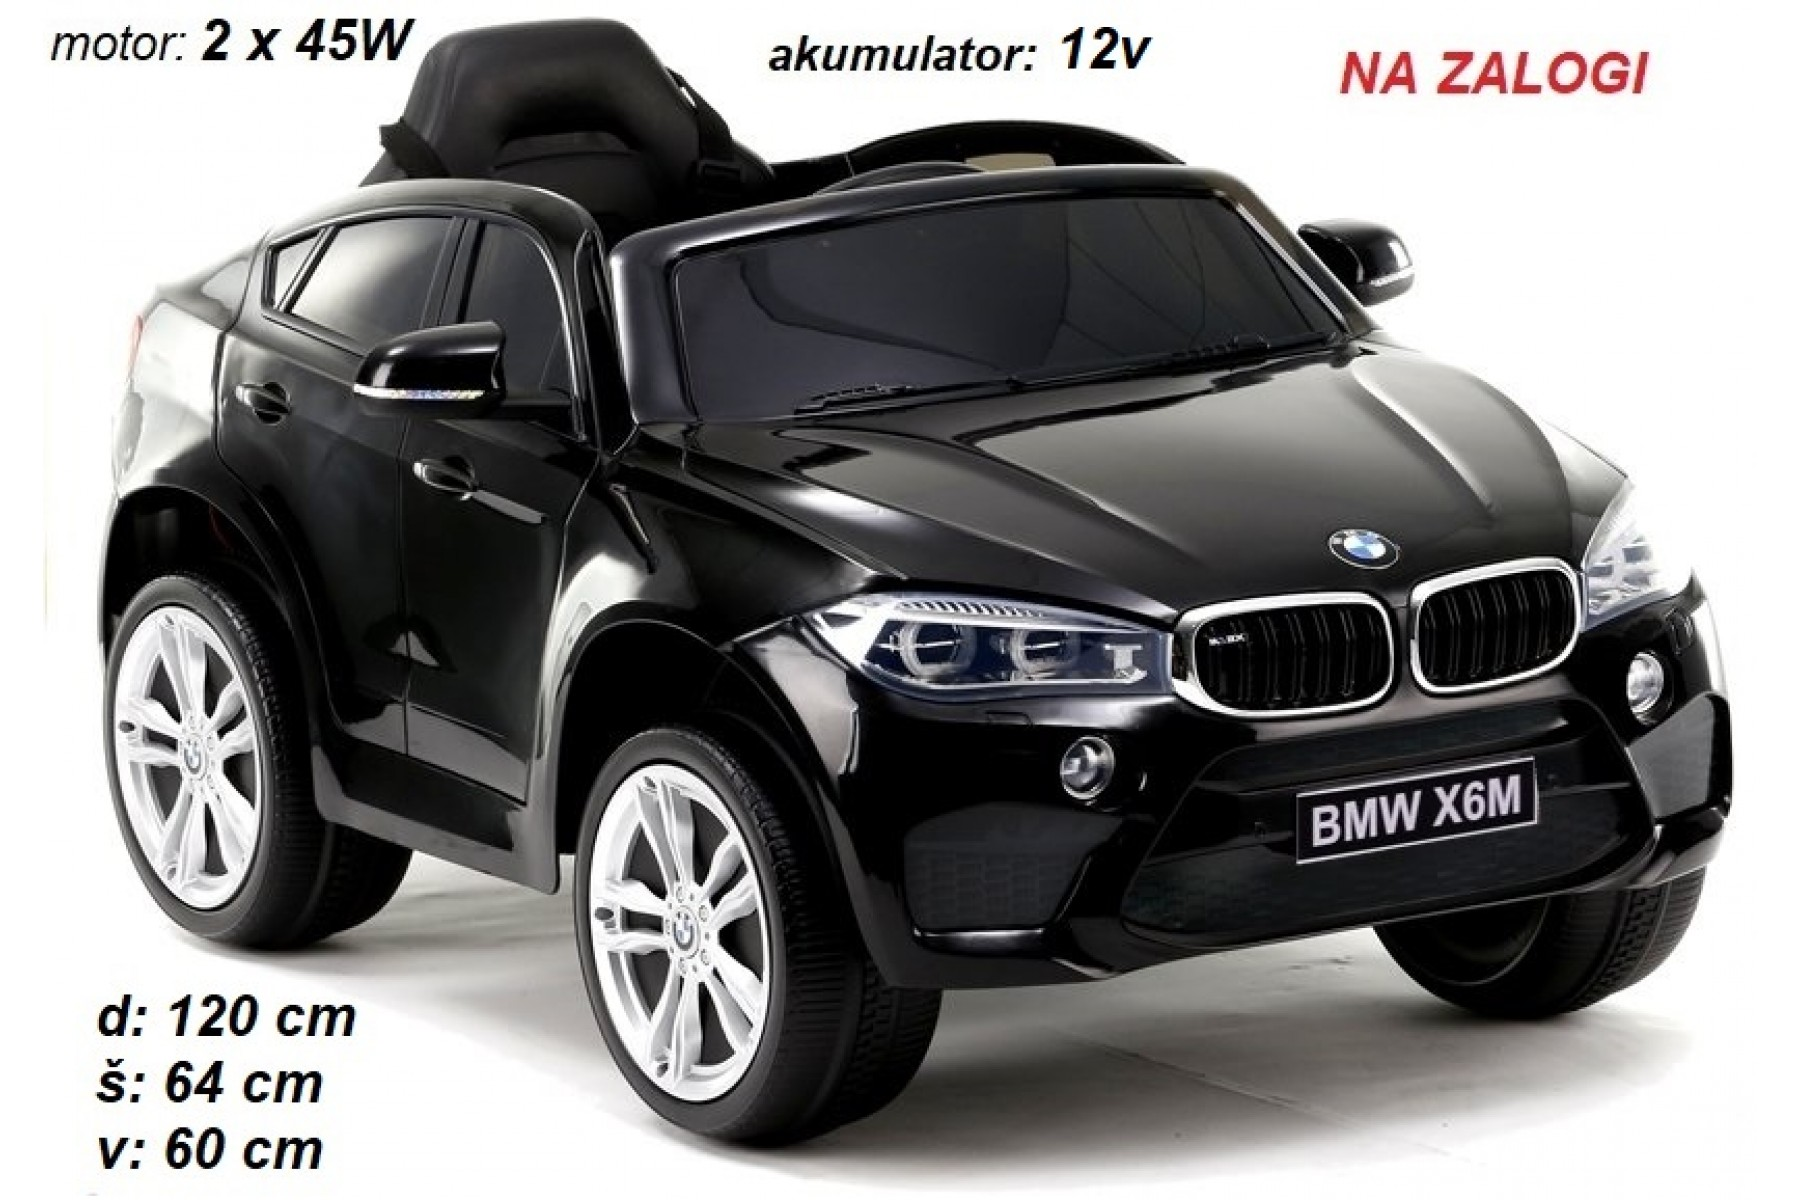 BMW X6M enosed